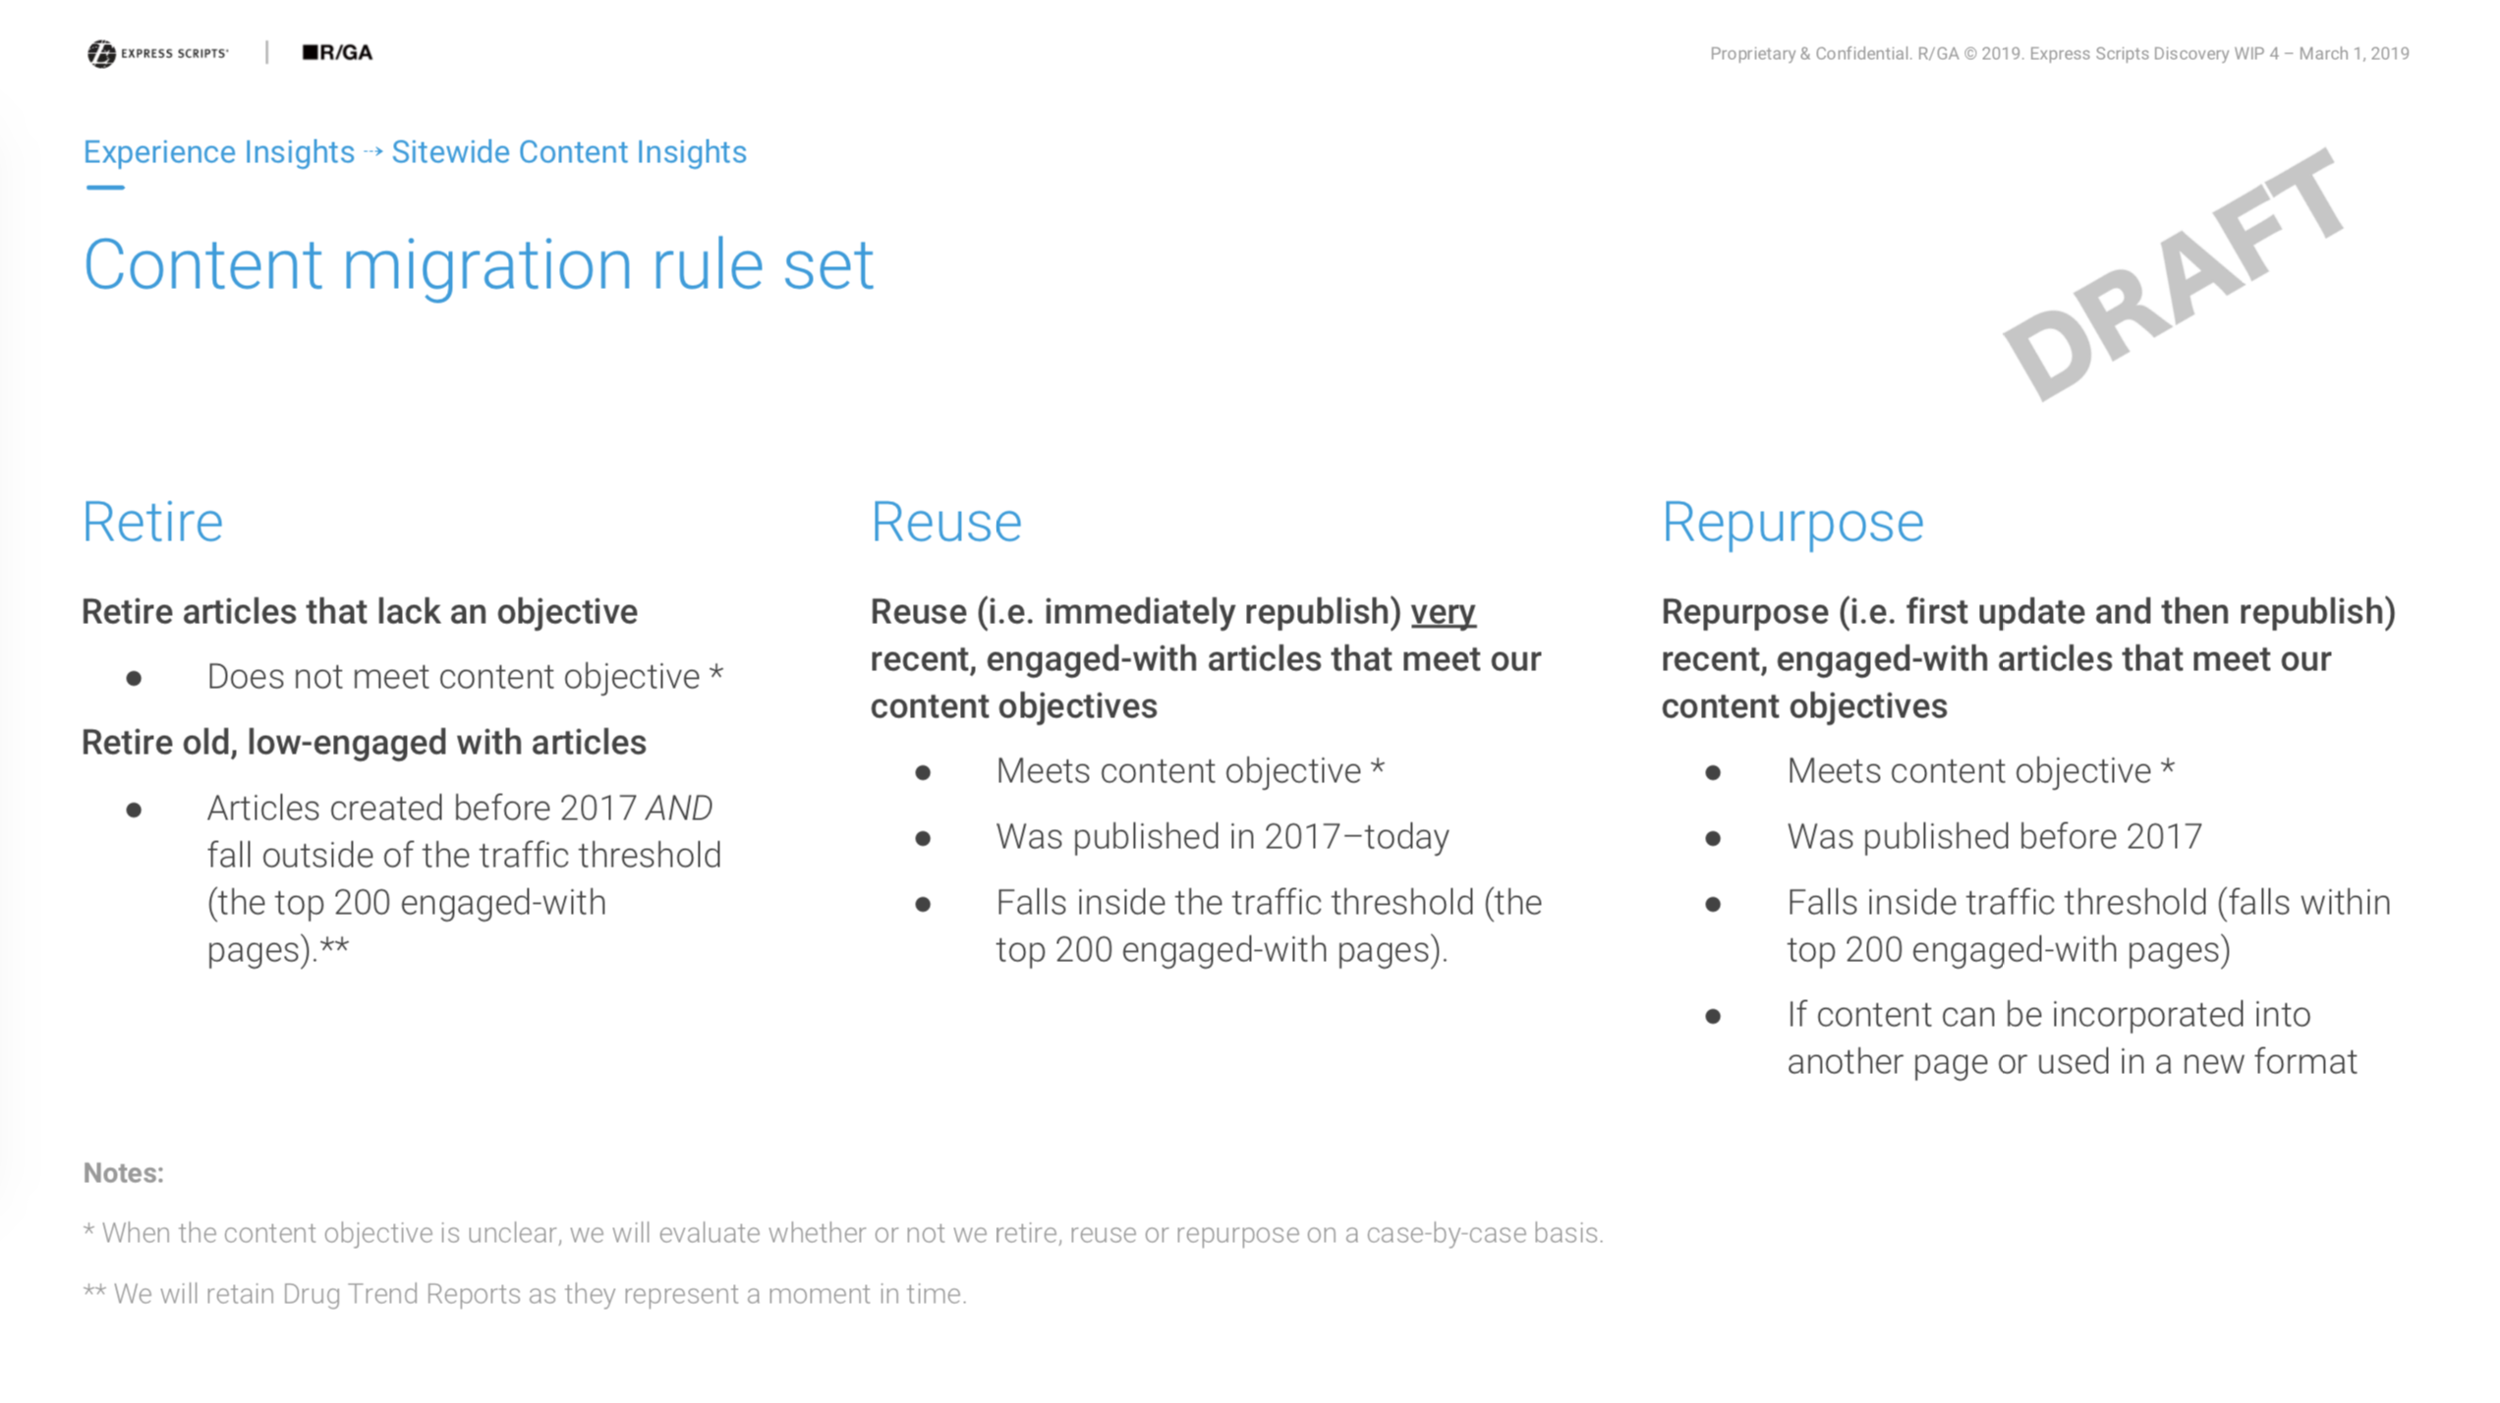 Migration plan for existing content